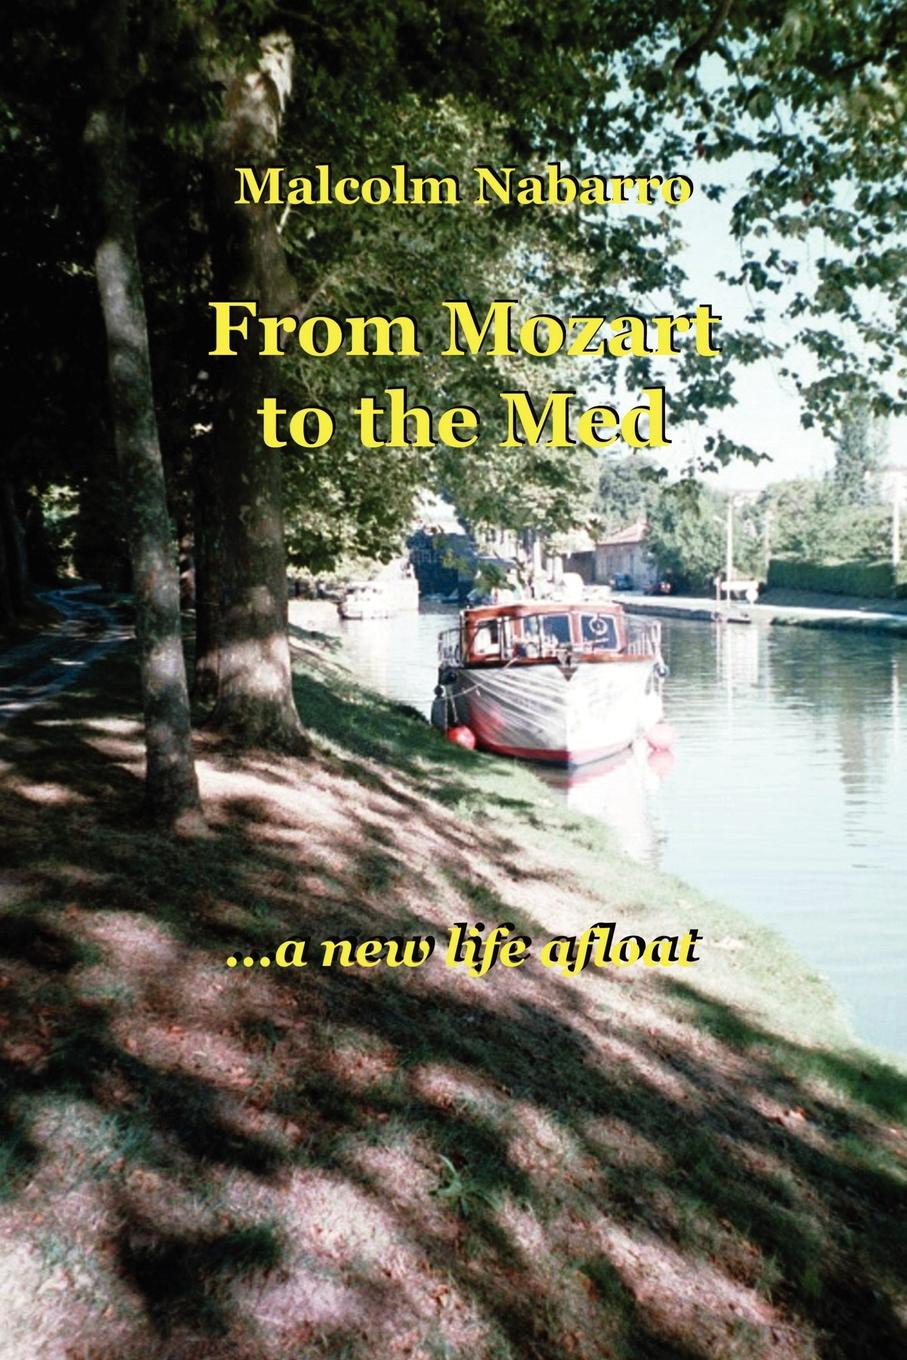 Malcolm Nabarro From Mozart to the Med... a New Life Afloat